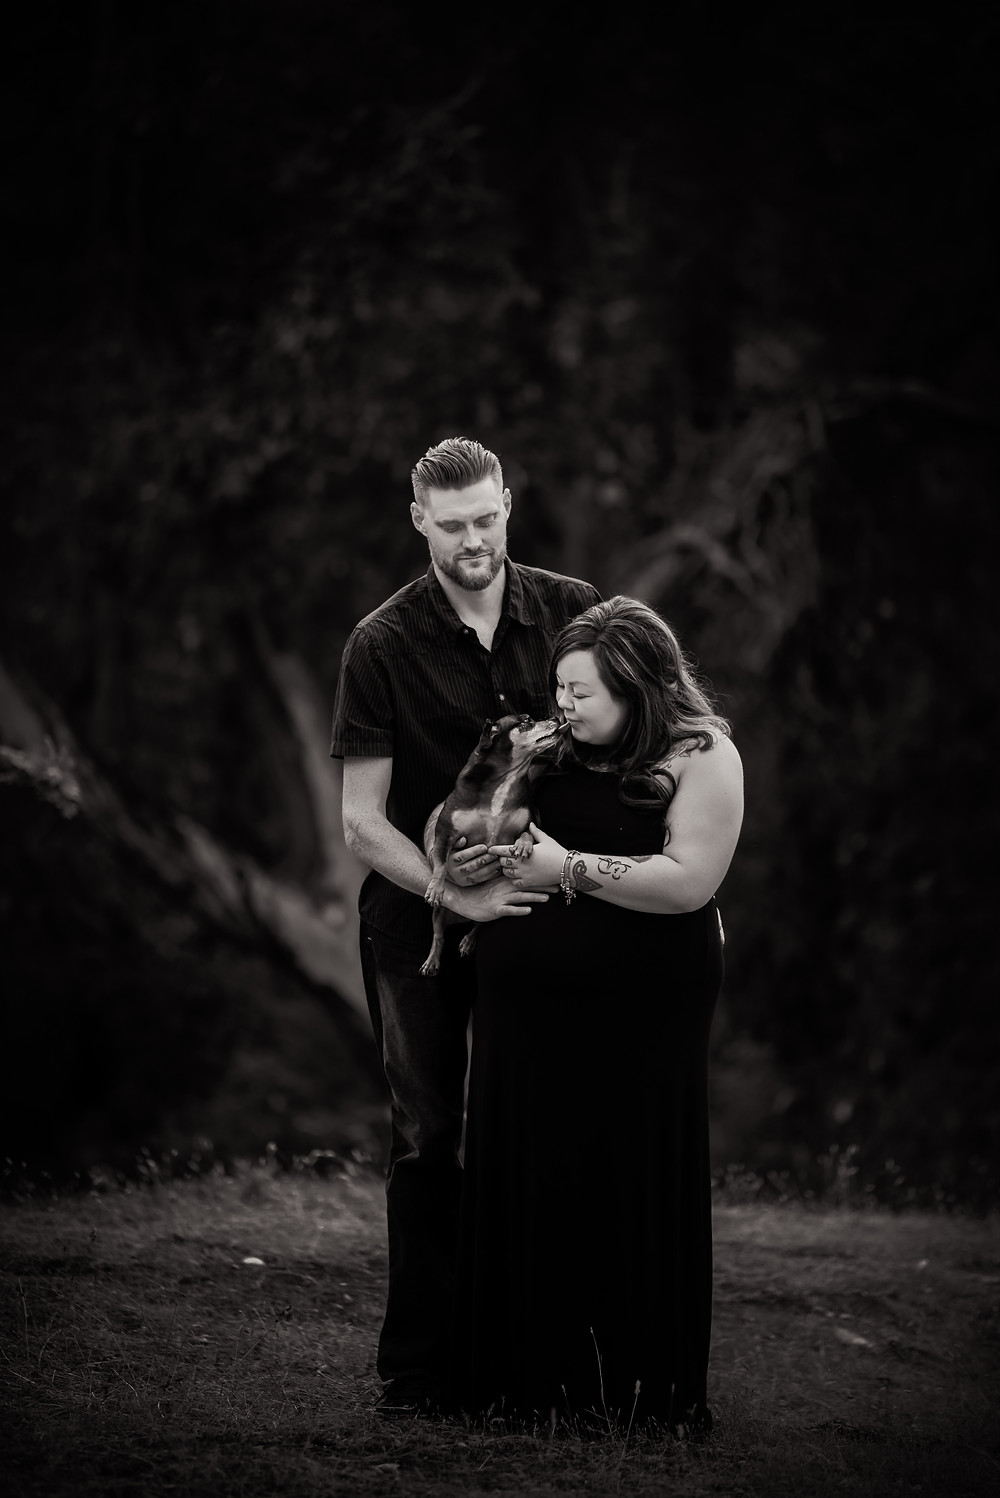 Fur baby with baby bump, Maternity photographer Victoria BC, Family photographer, Sidney BC photographer